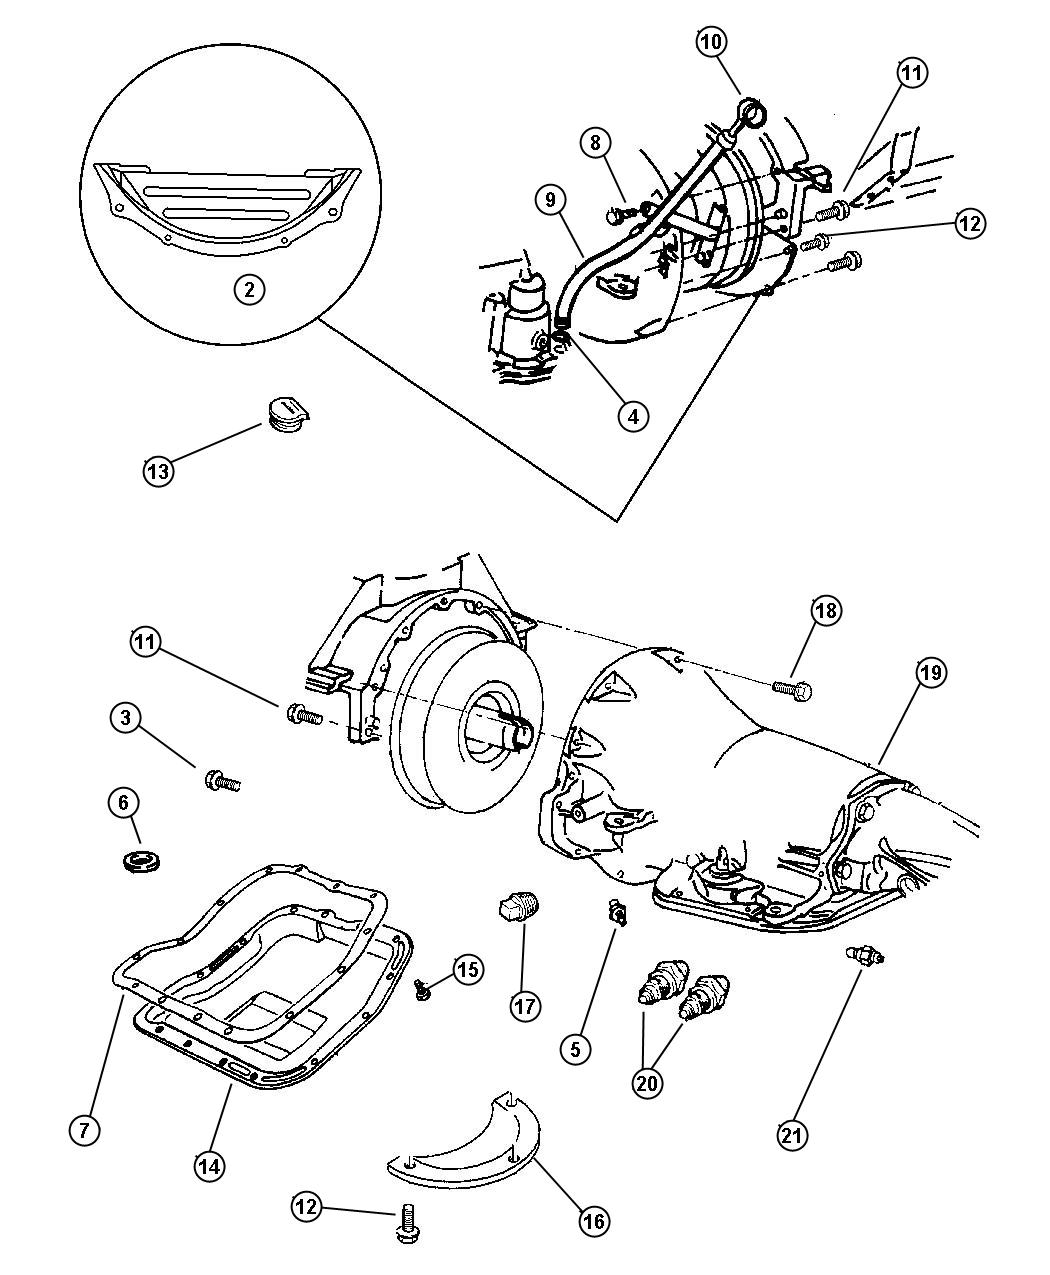 47re transmission diagram pdf 1999 dodge ram 1500 case and related parts,4 speed, 47re #4